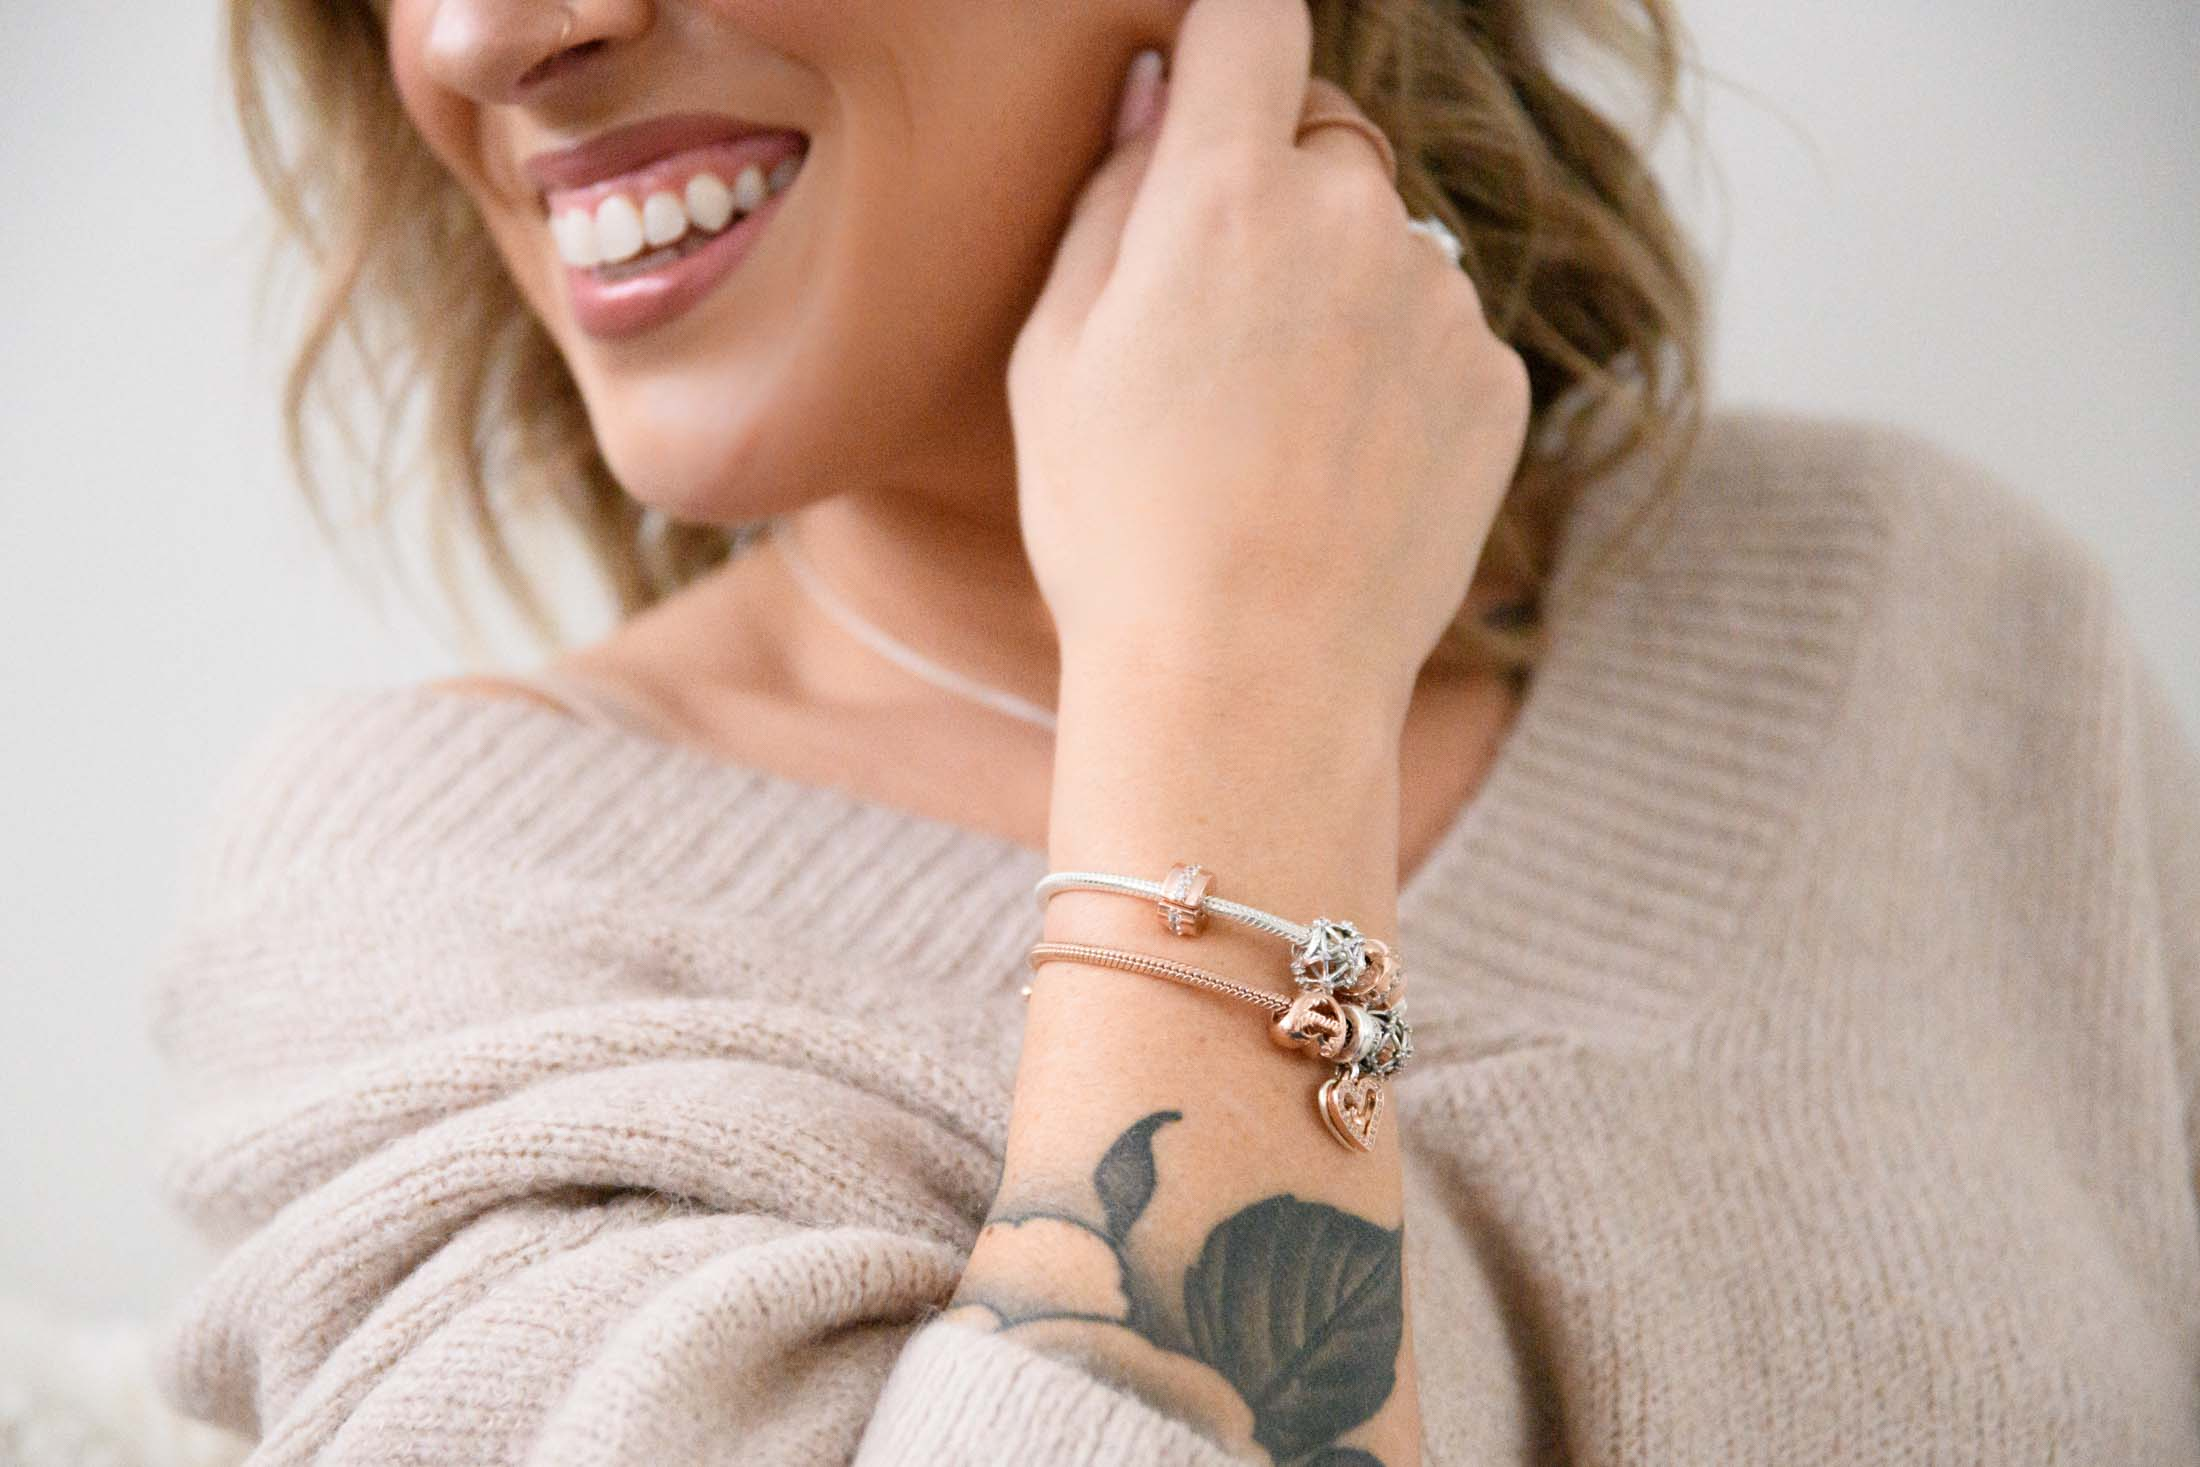 Bring On The Sparkle Pandora Jewelry Makes A Thoughtful Timeless Gift The Mom Edit